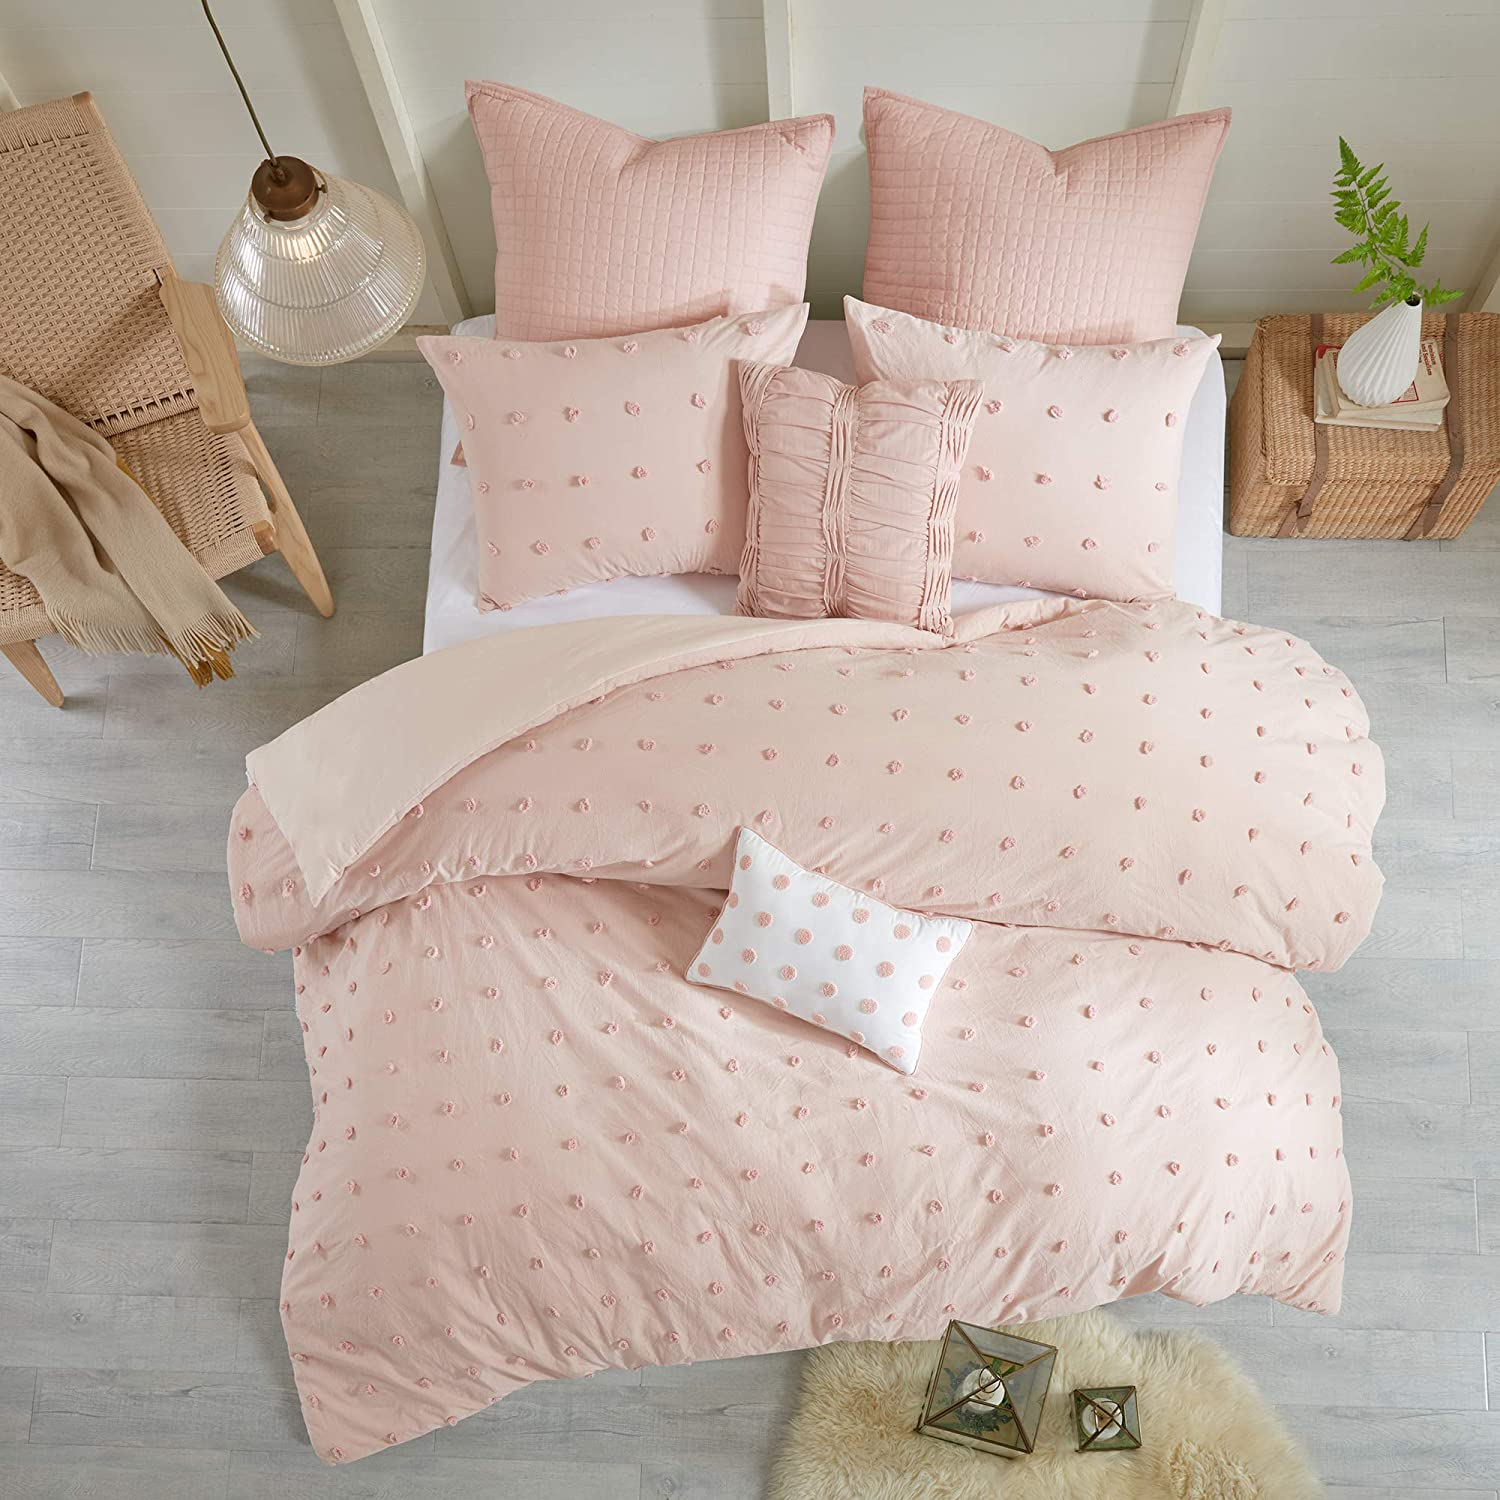 Urban Habitat Brooklyn Cotton Jacquard Duvet Cover Set Pink Twin/Twin XL